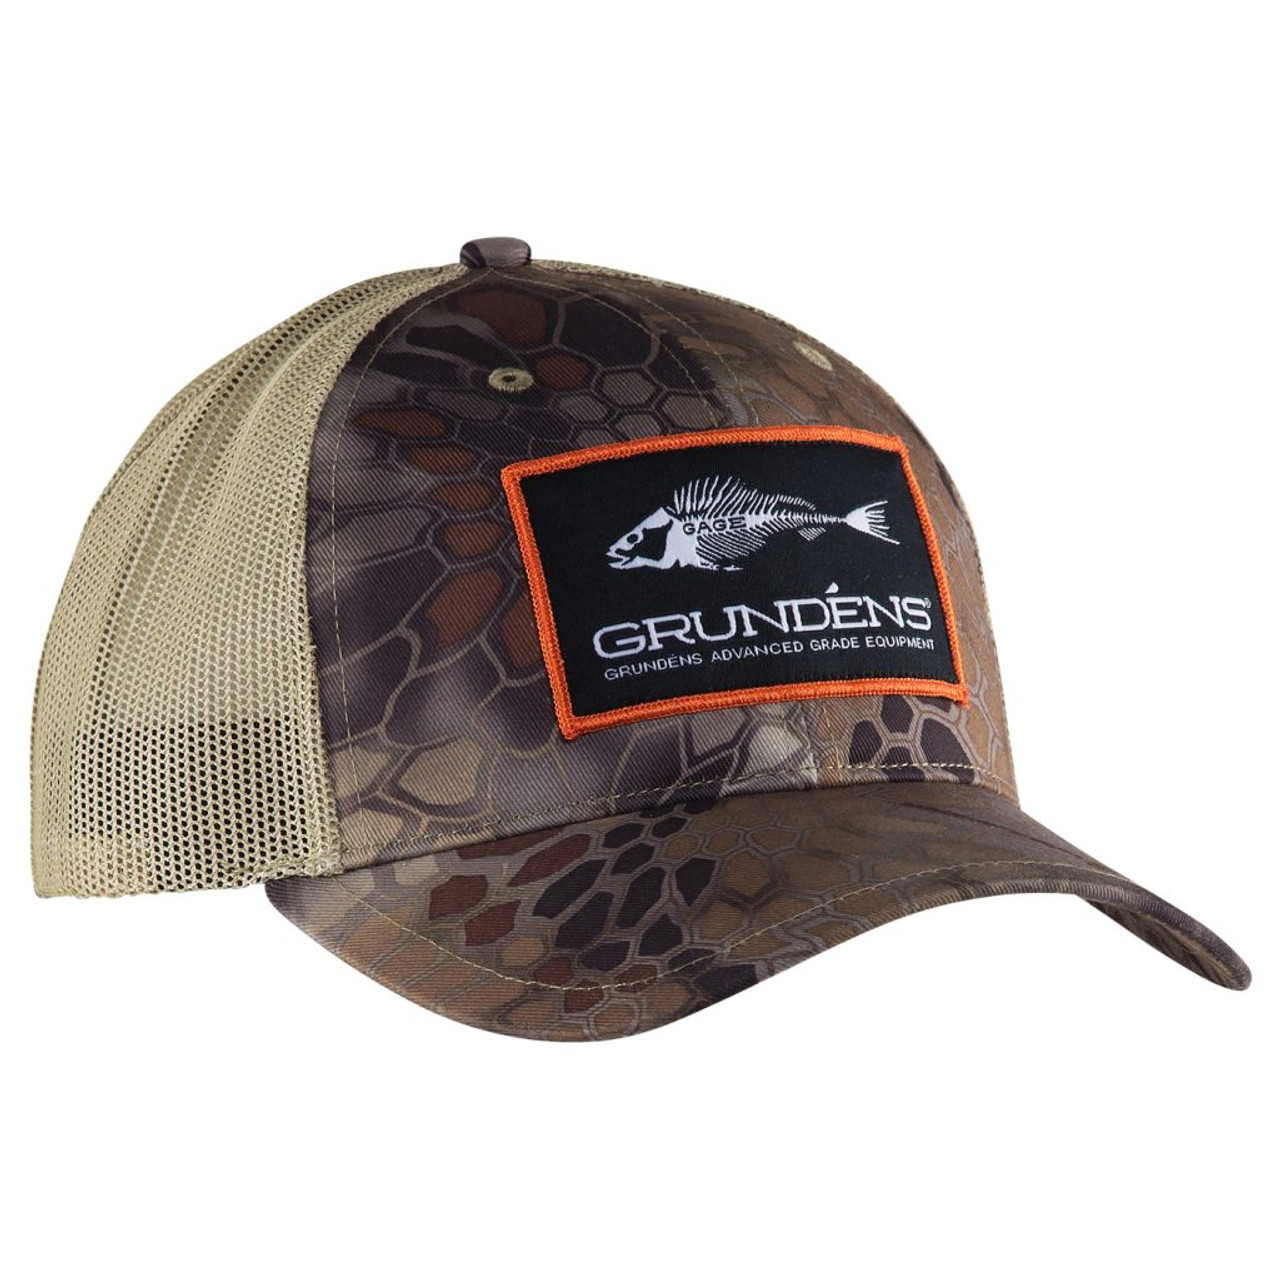 5a8785ec8a2 Grundens Trucker Cap Eat Fish Wear Grundens Kryptek Highlander Camo -  Alltackle.com